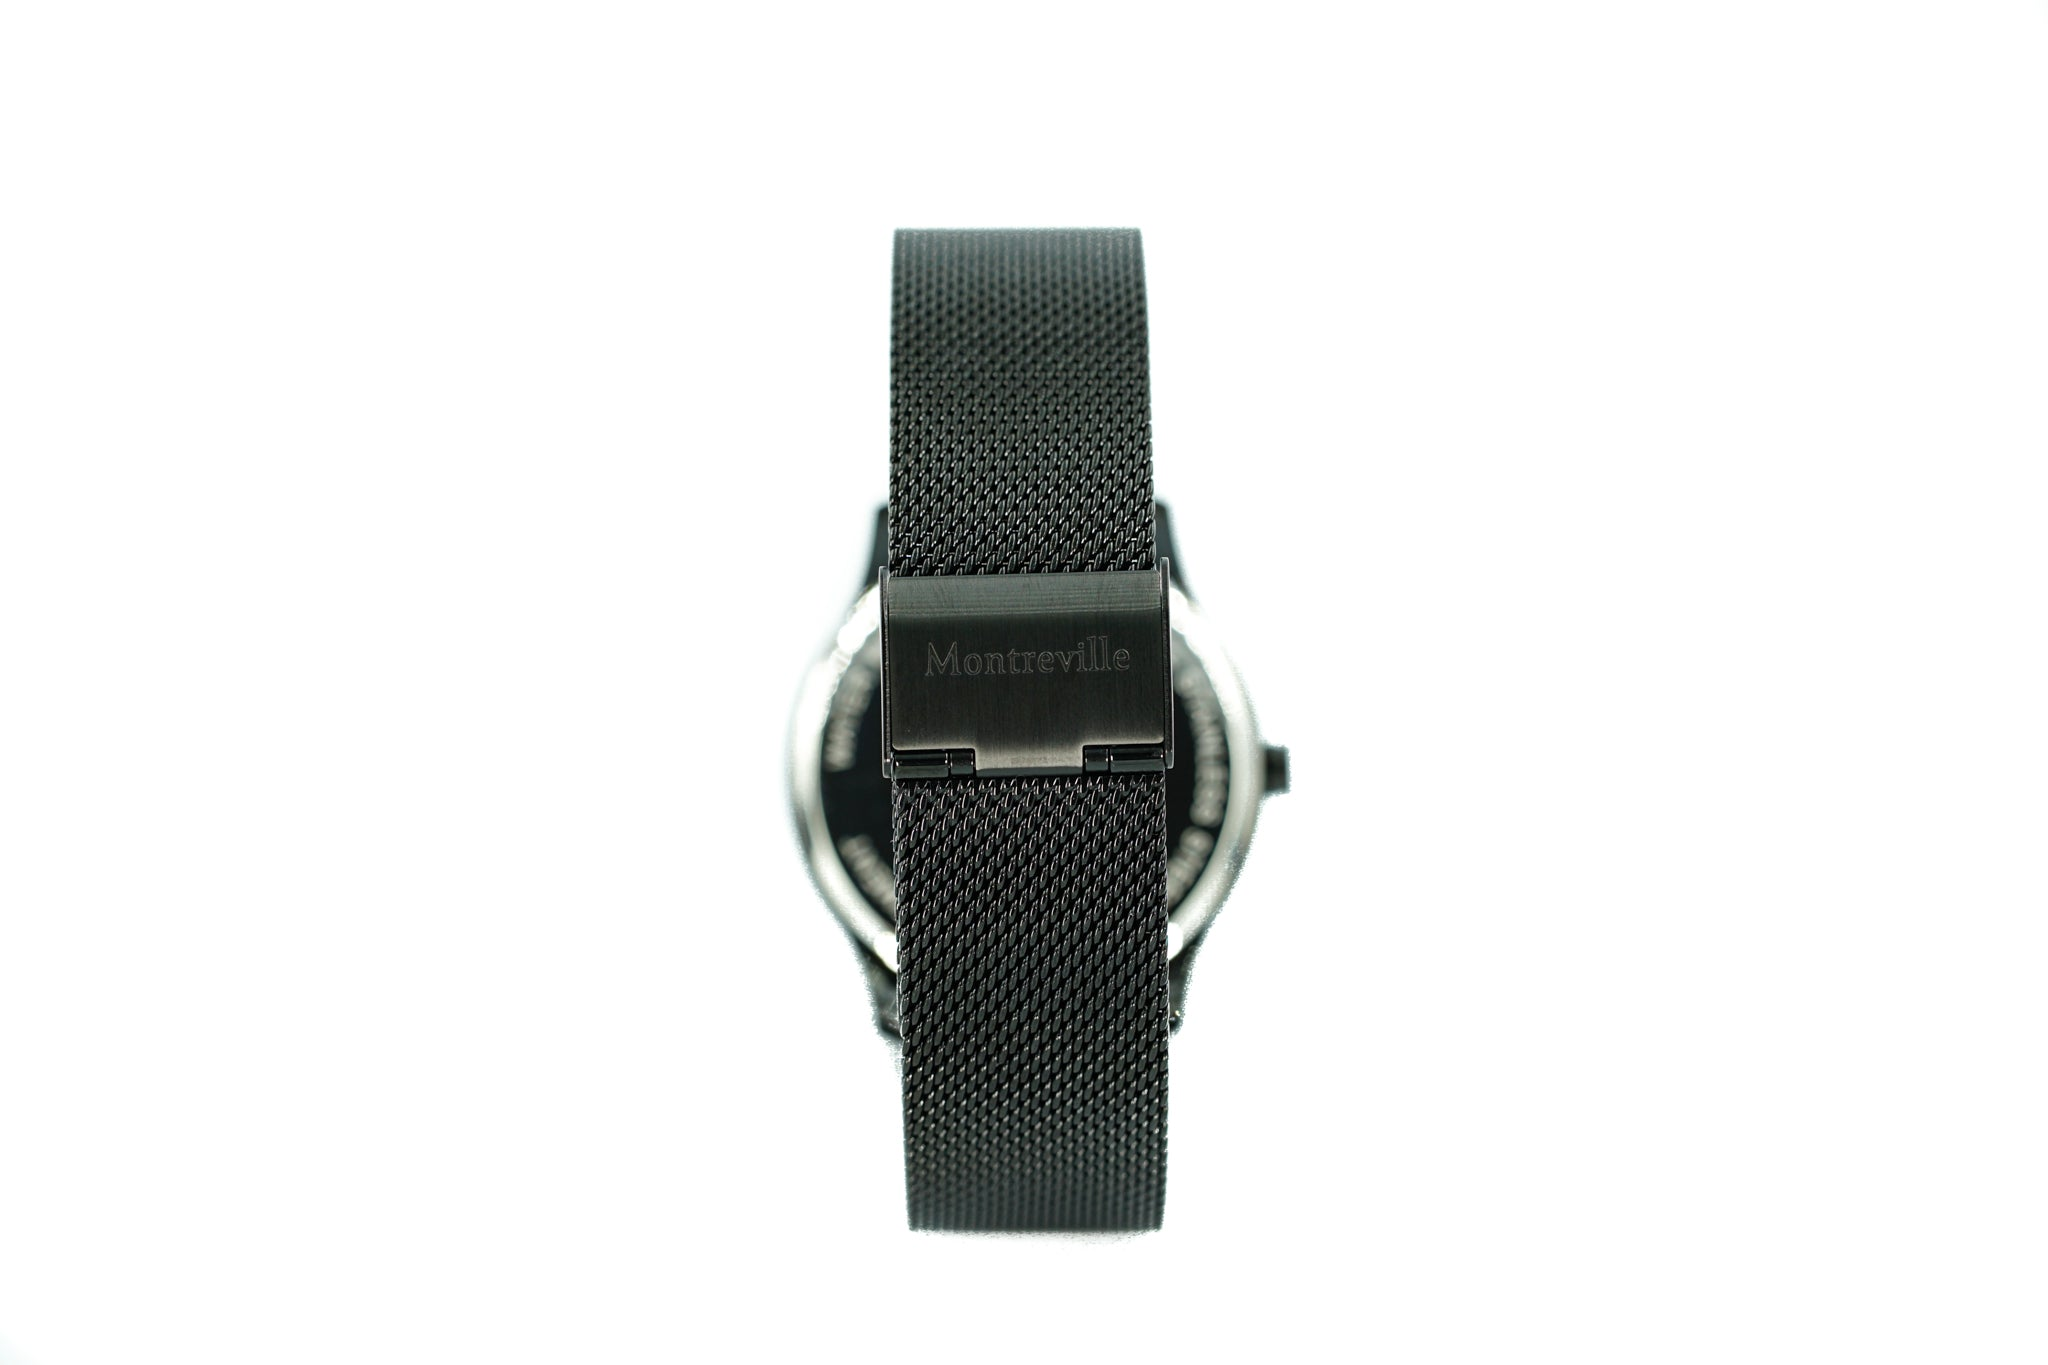 Black watch called Houston from the brand Montreville, seen from the back. This is an image of the watch with a white background. The timepiece has an elegant design with a mesh strap in black.